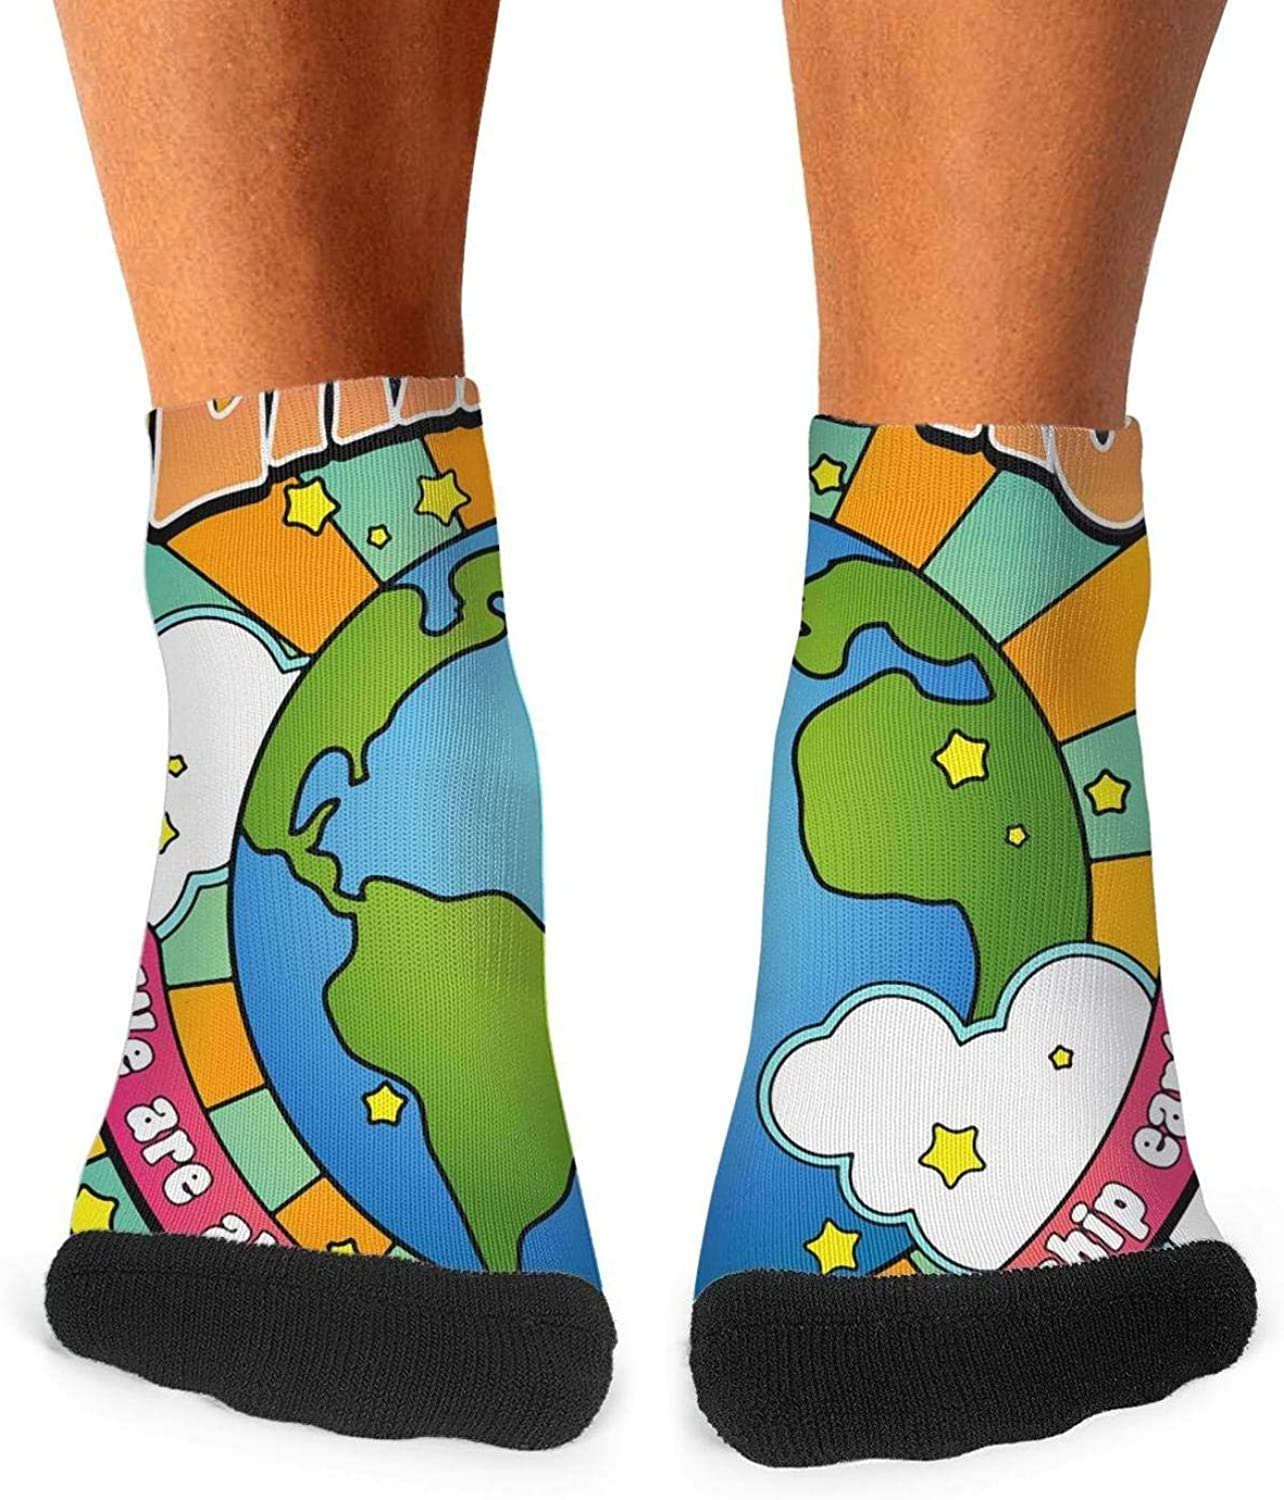 Floowyerion Mens Happy Earth Day poster Novelty Sports Socks Crazy Funny Crew Tube Socks